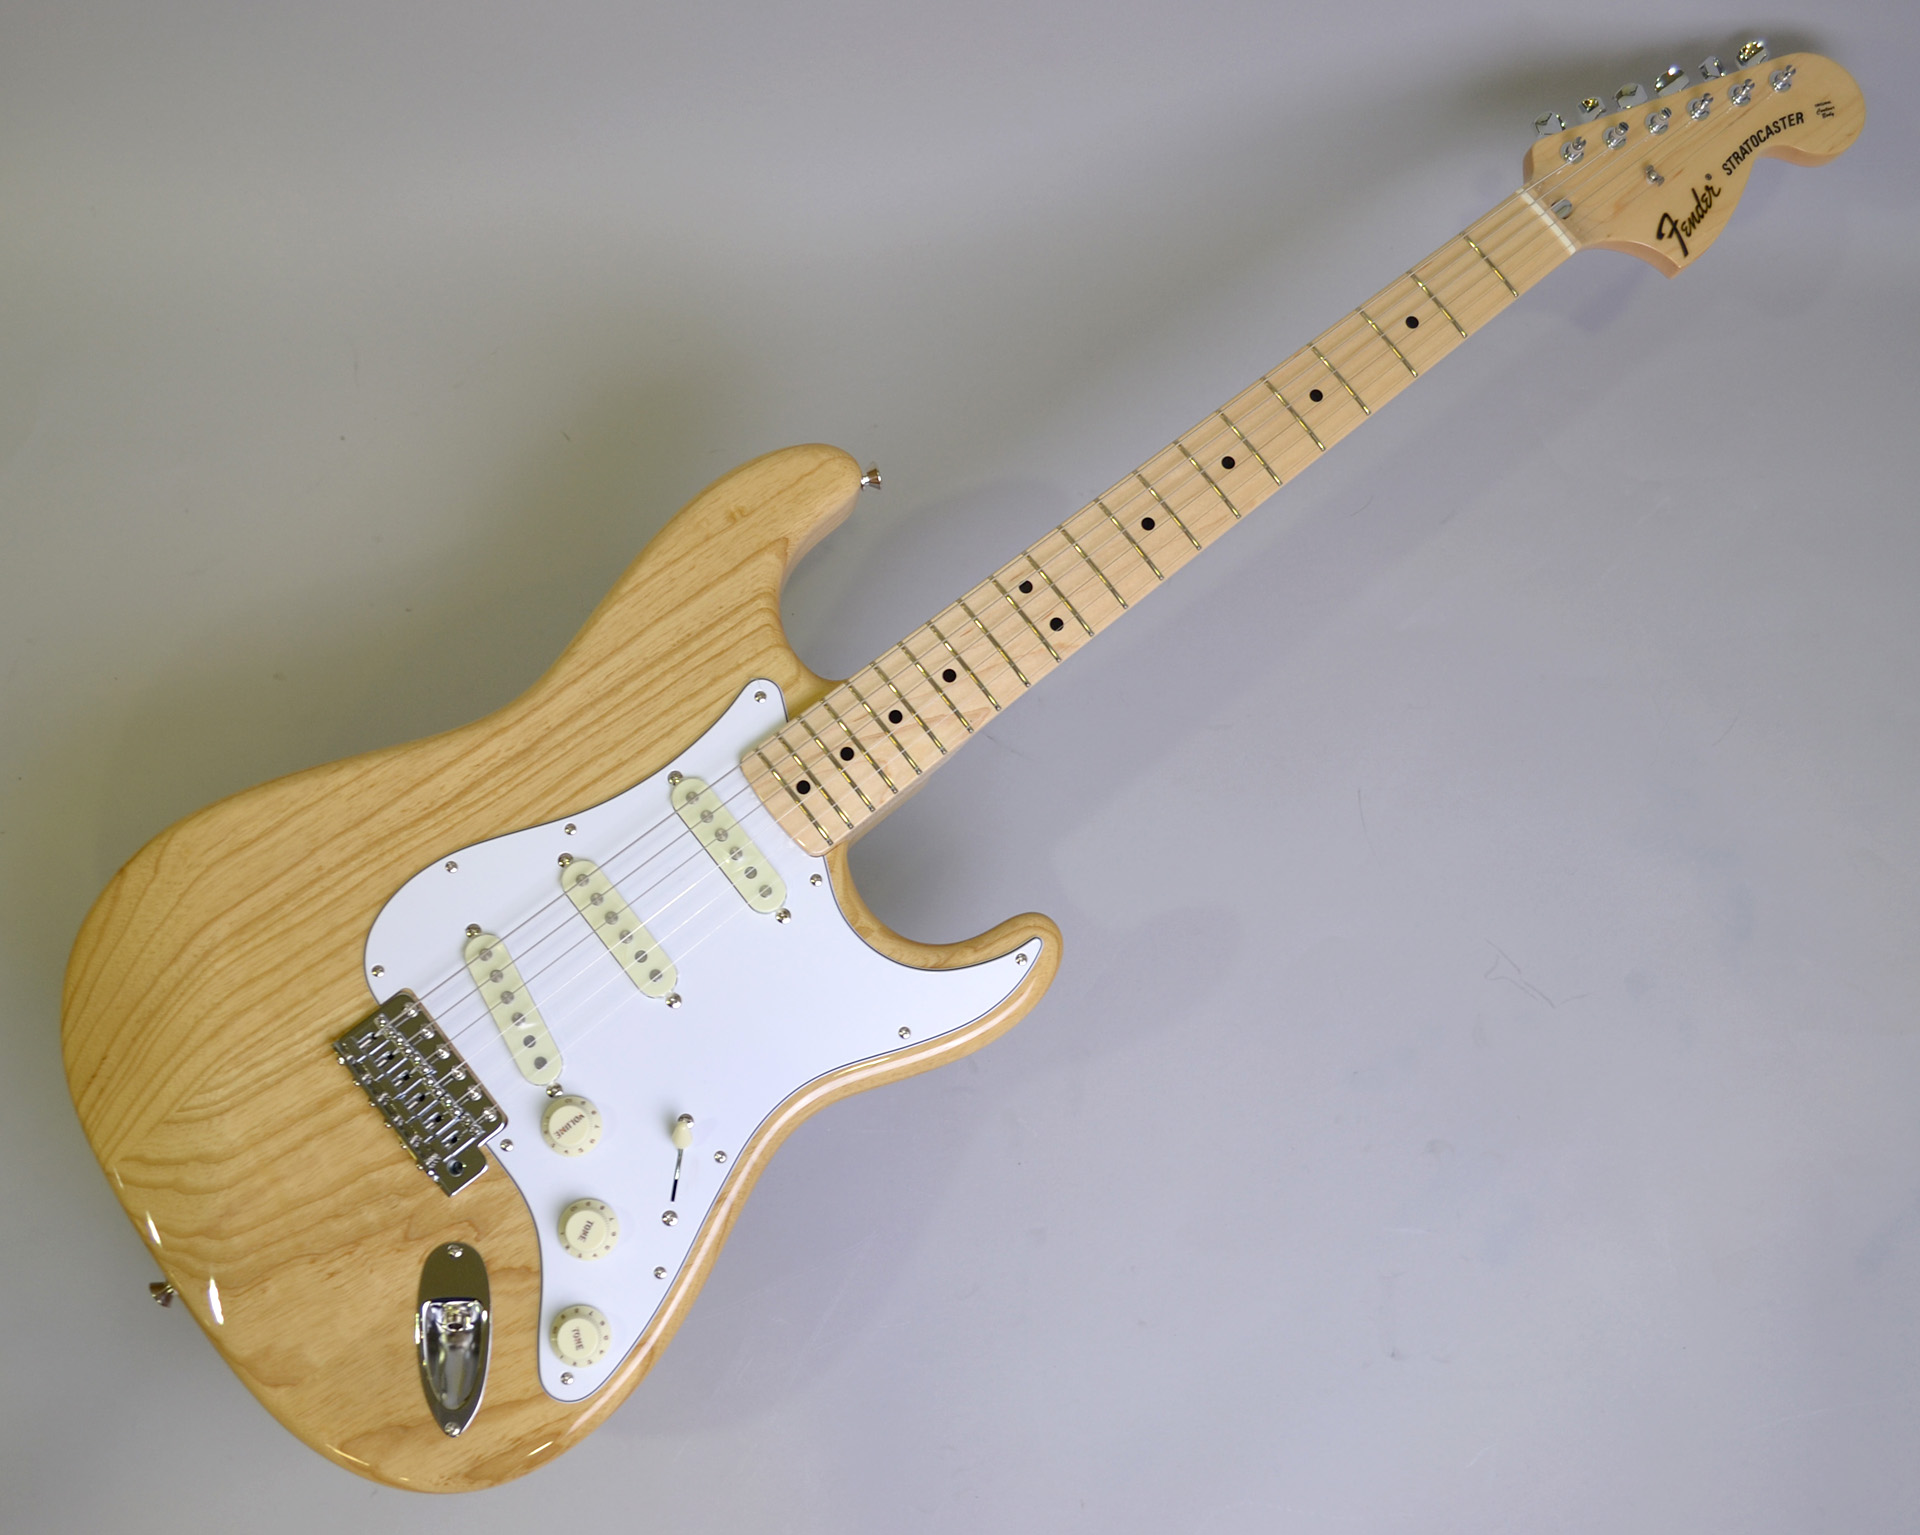 MADE IN JAPAN TRADITIONAL 70S STRATCASTER ASH MAPLEのボディトップ-アップ画像